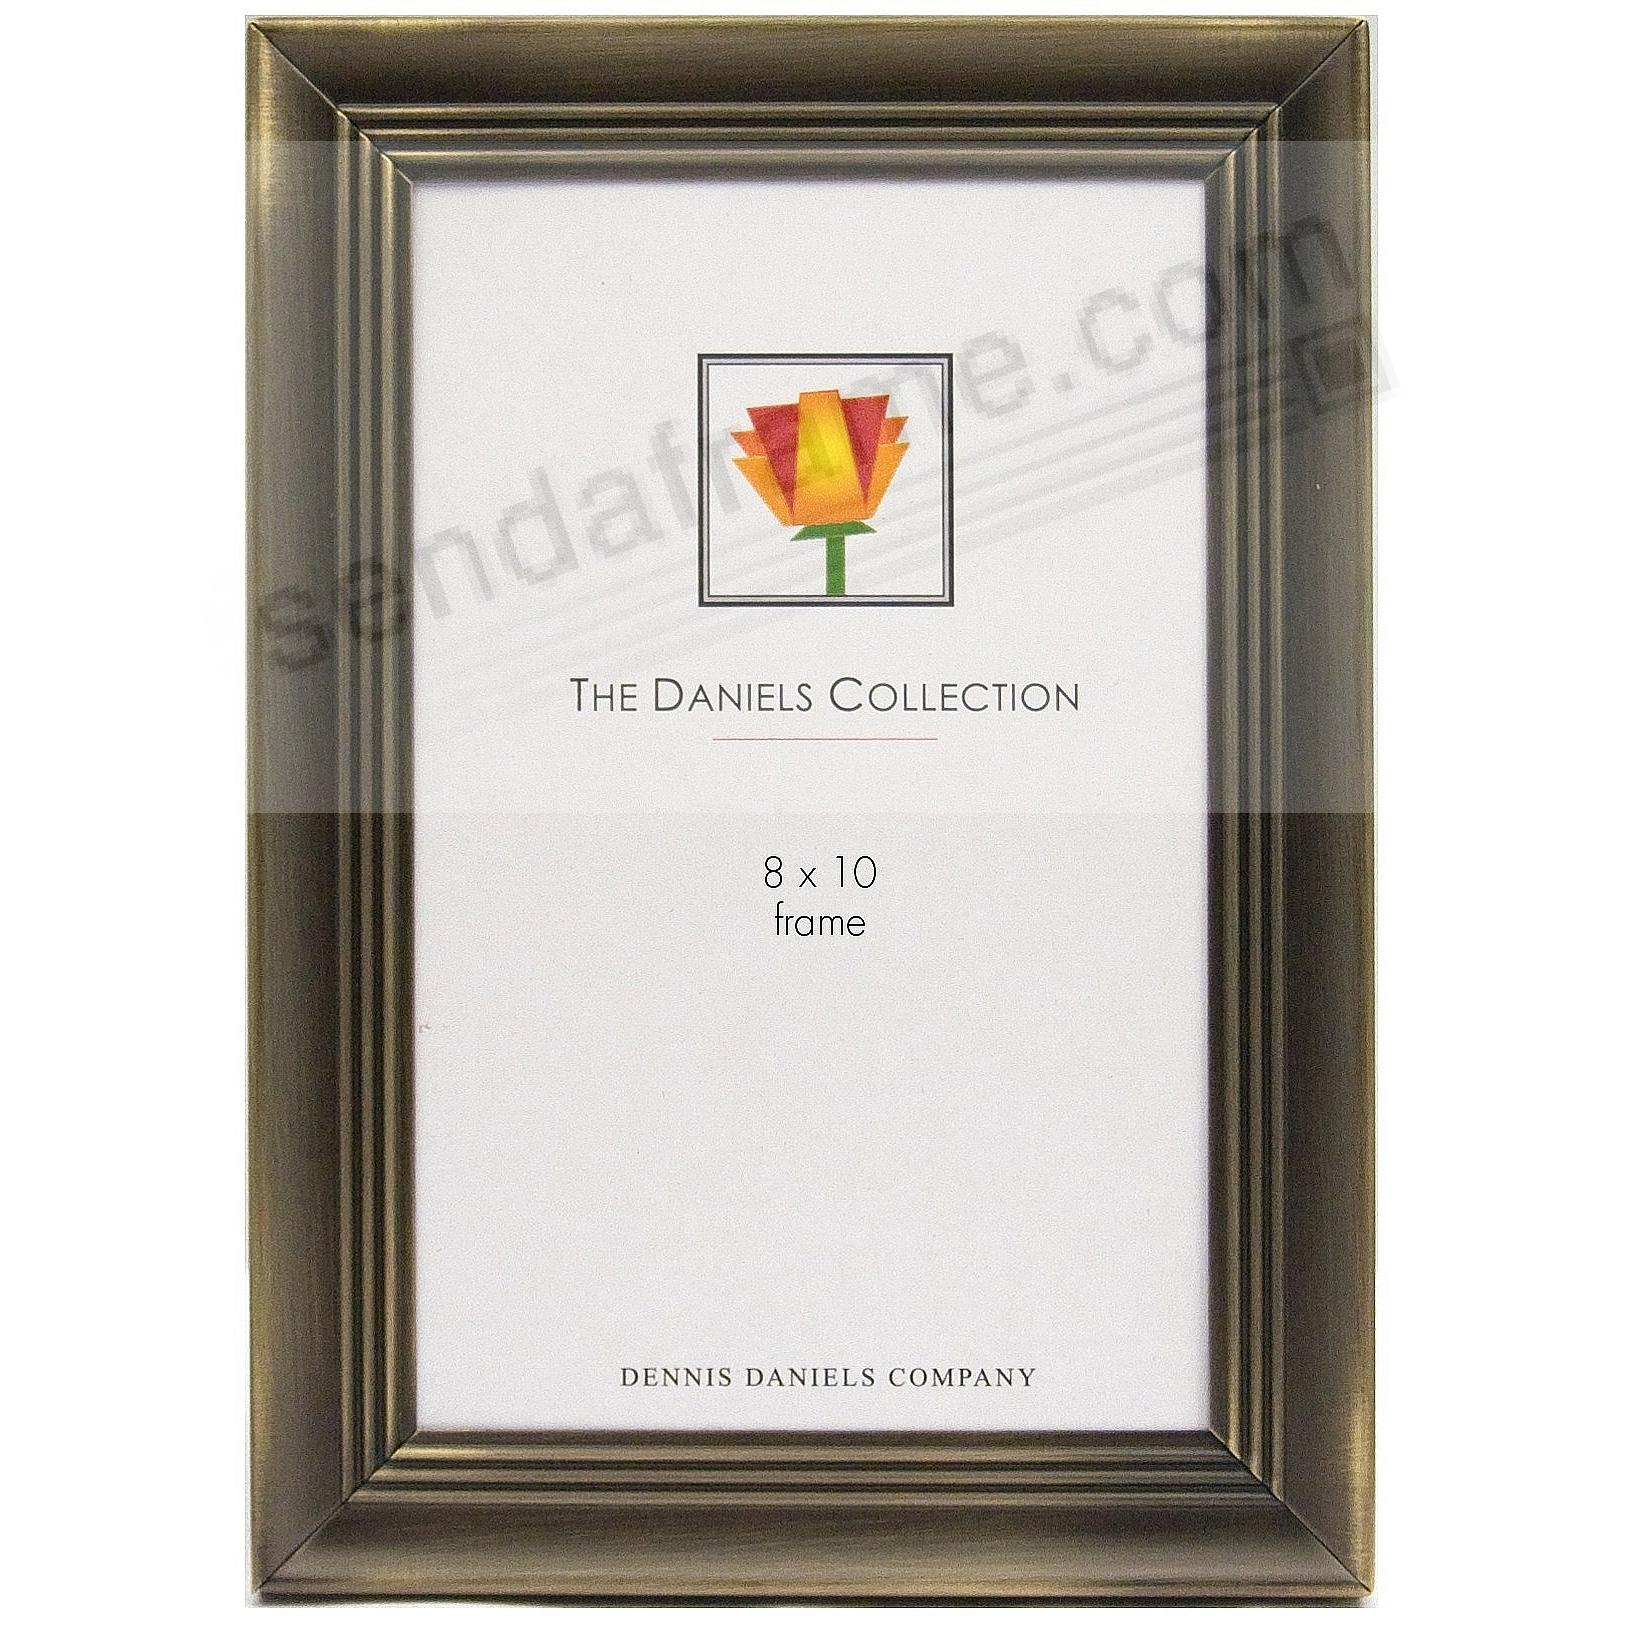 STEEL CONTOUR Ridged Antique-Brass finish 8x10 frame